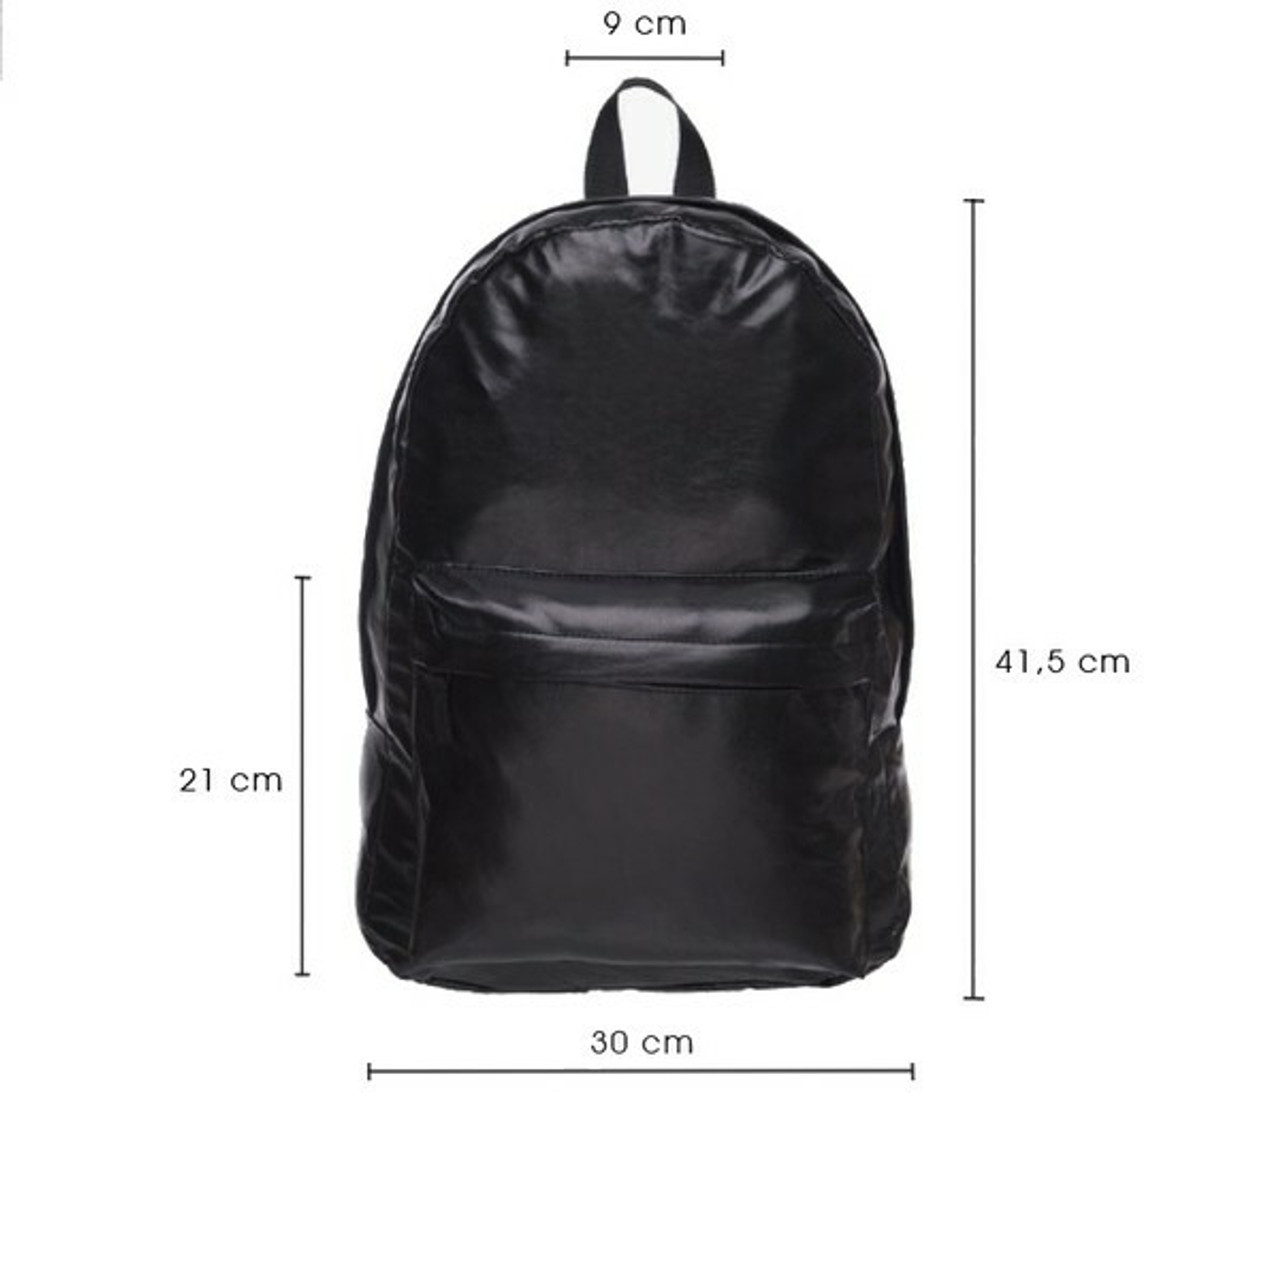 Black Faux Leather Backpack shown with dimensions